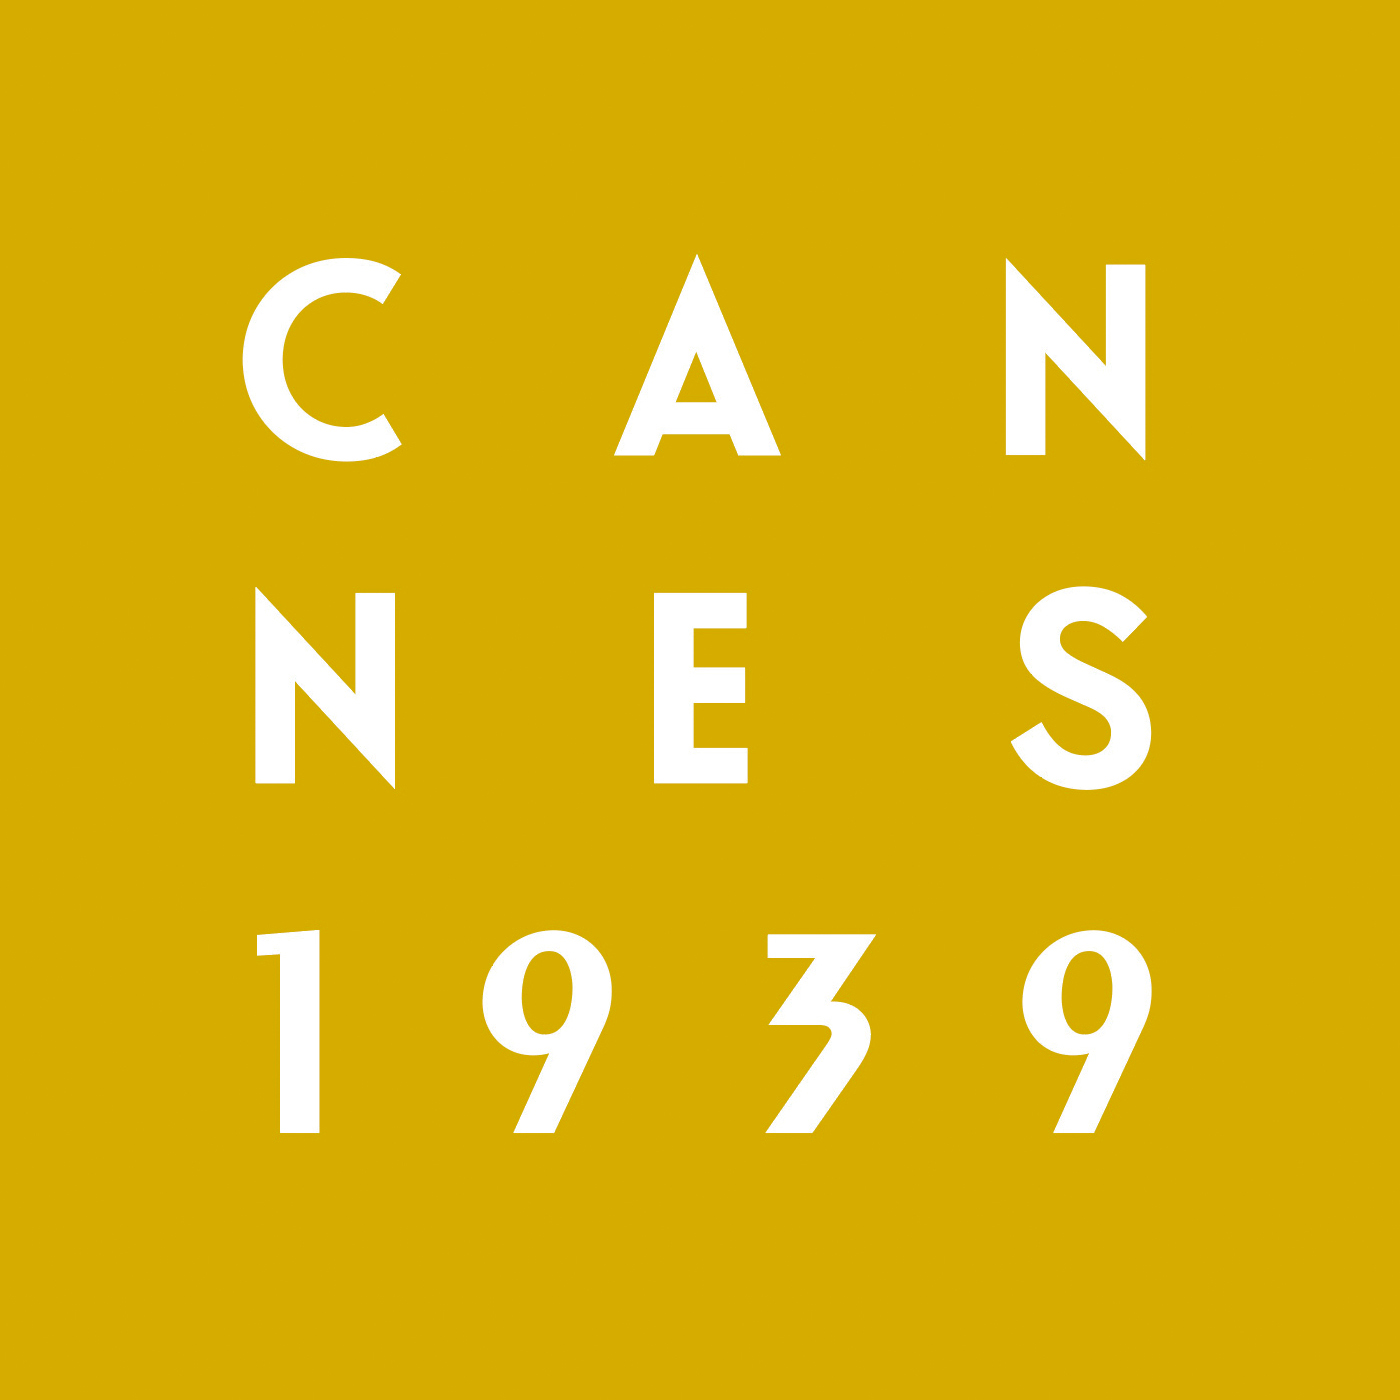 Le festival international du film de Cannes 1939 à Orléans en 2019